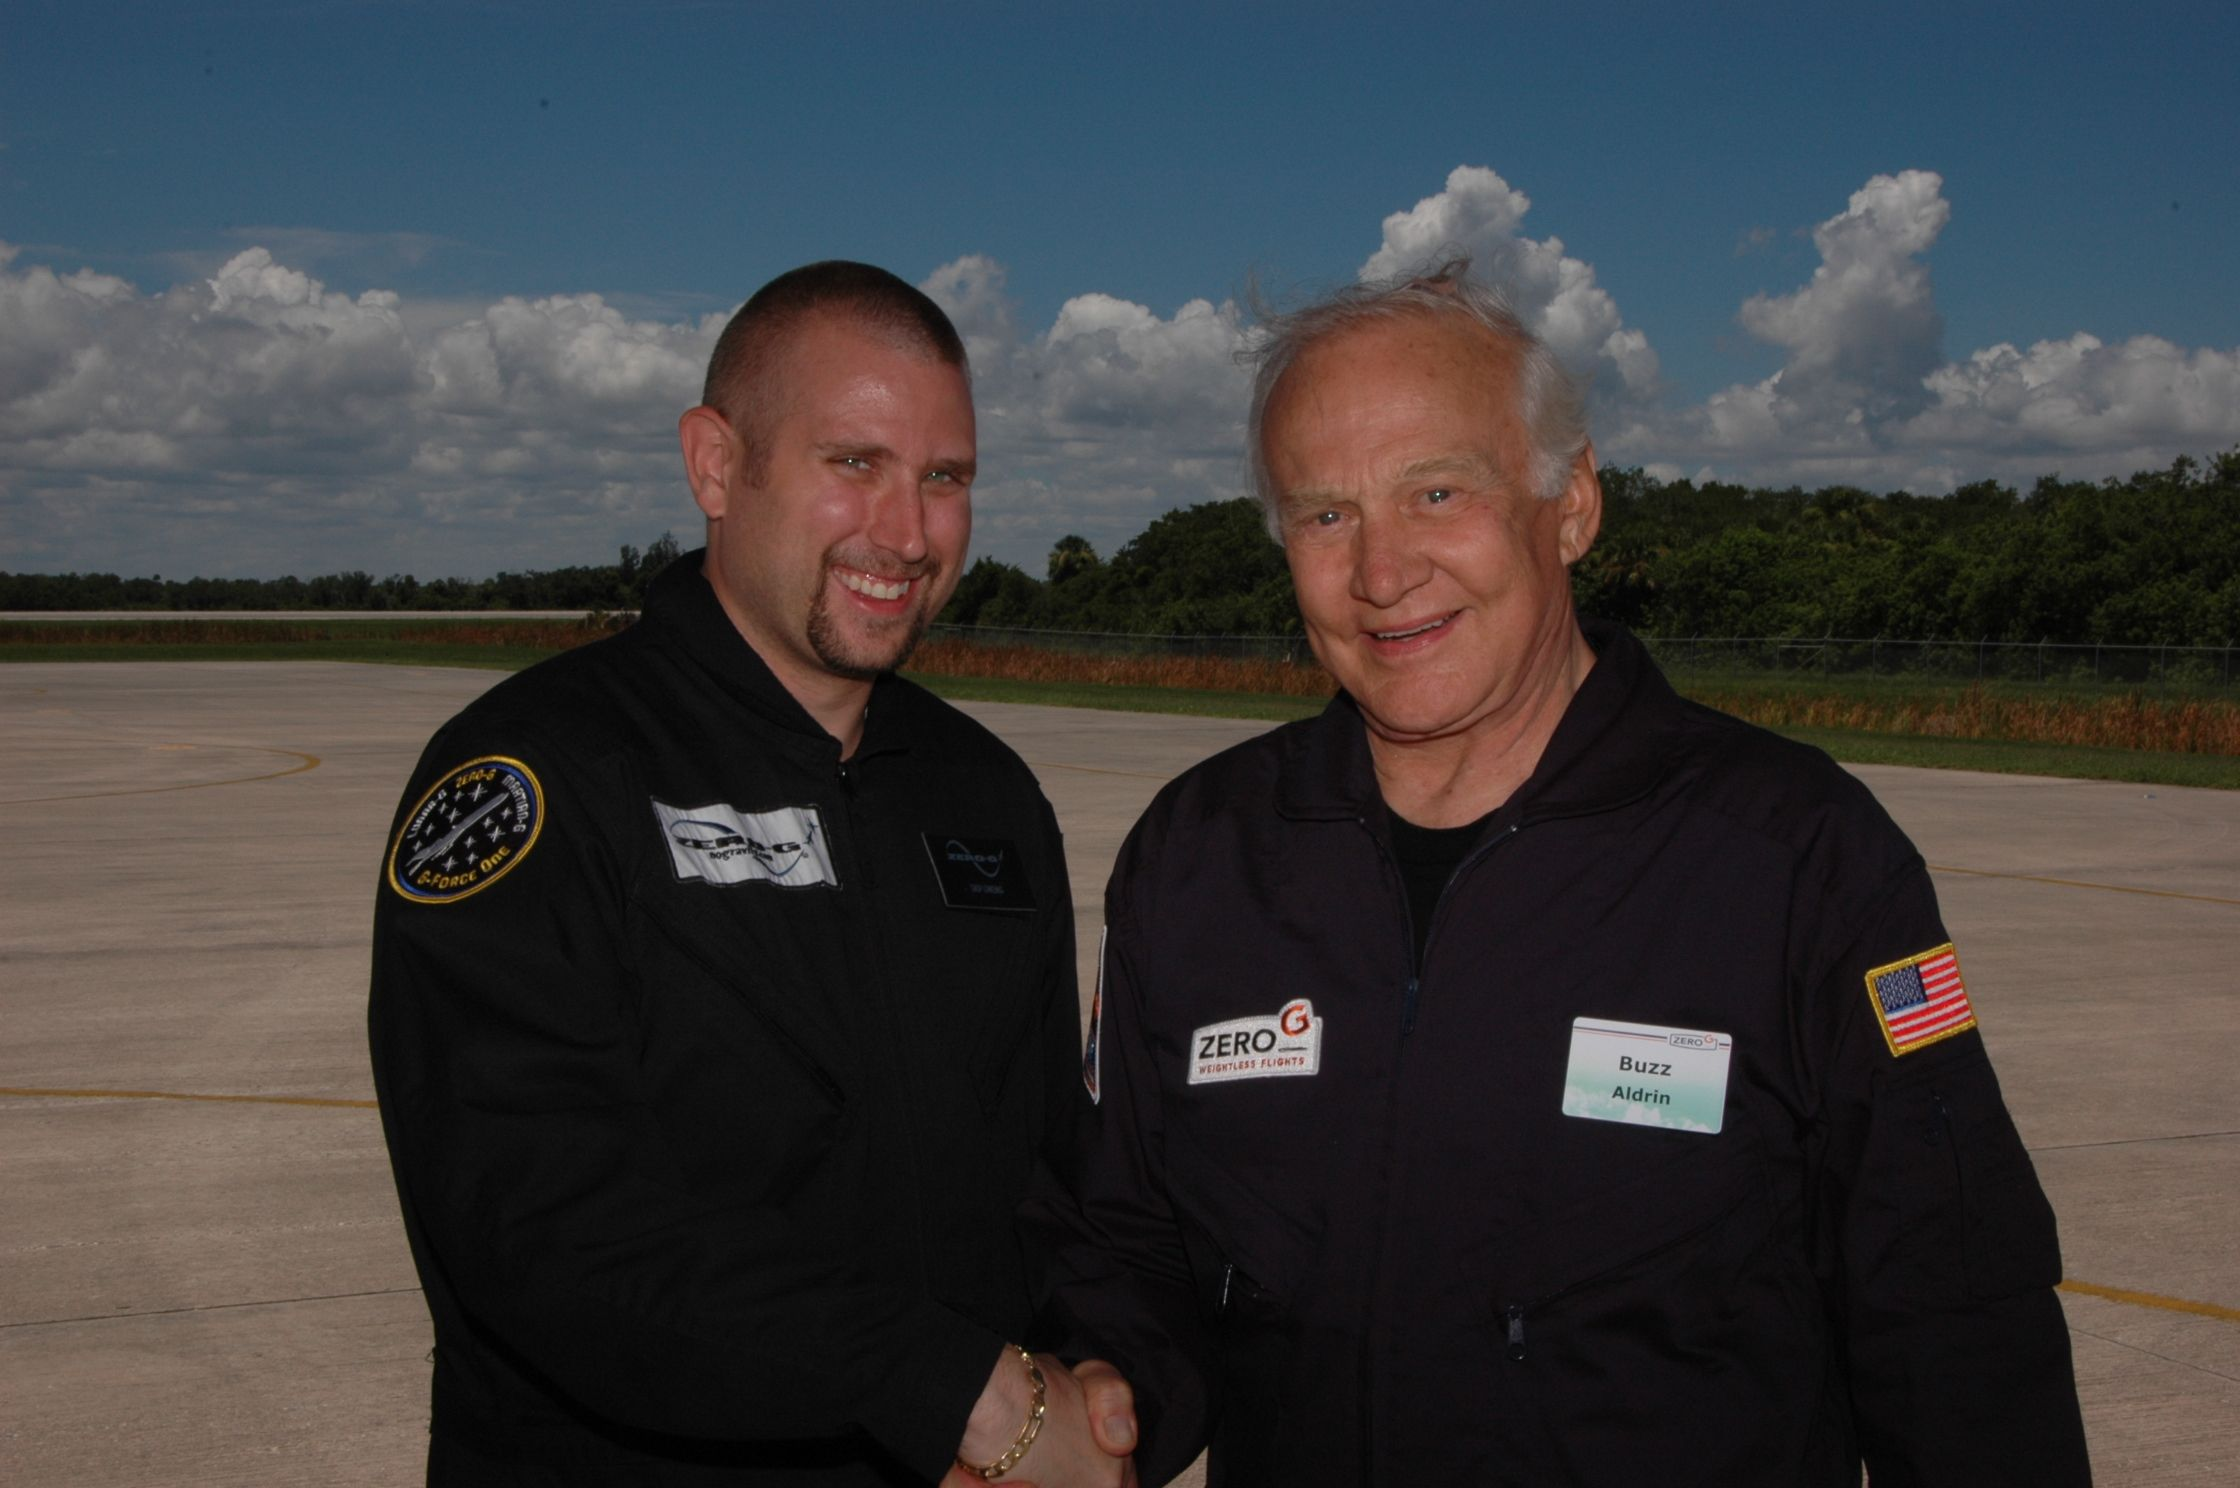 Me with Buzz Aldrin after our Zero-G flight